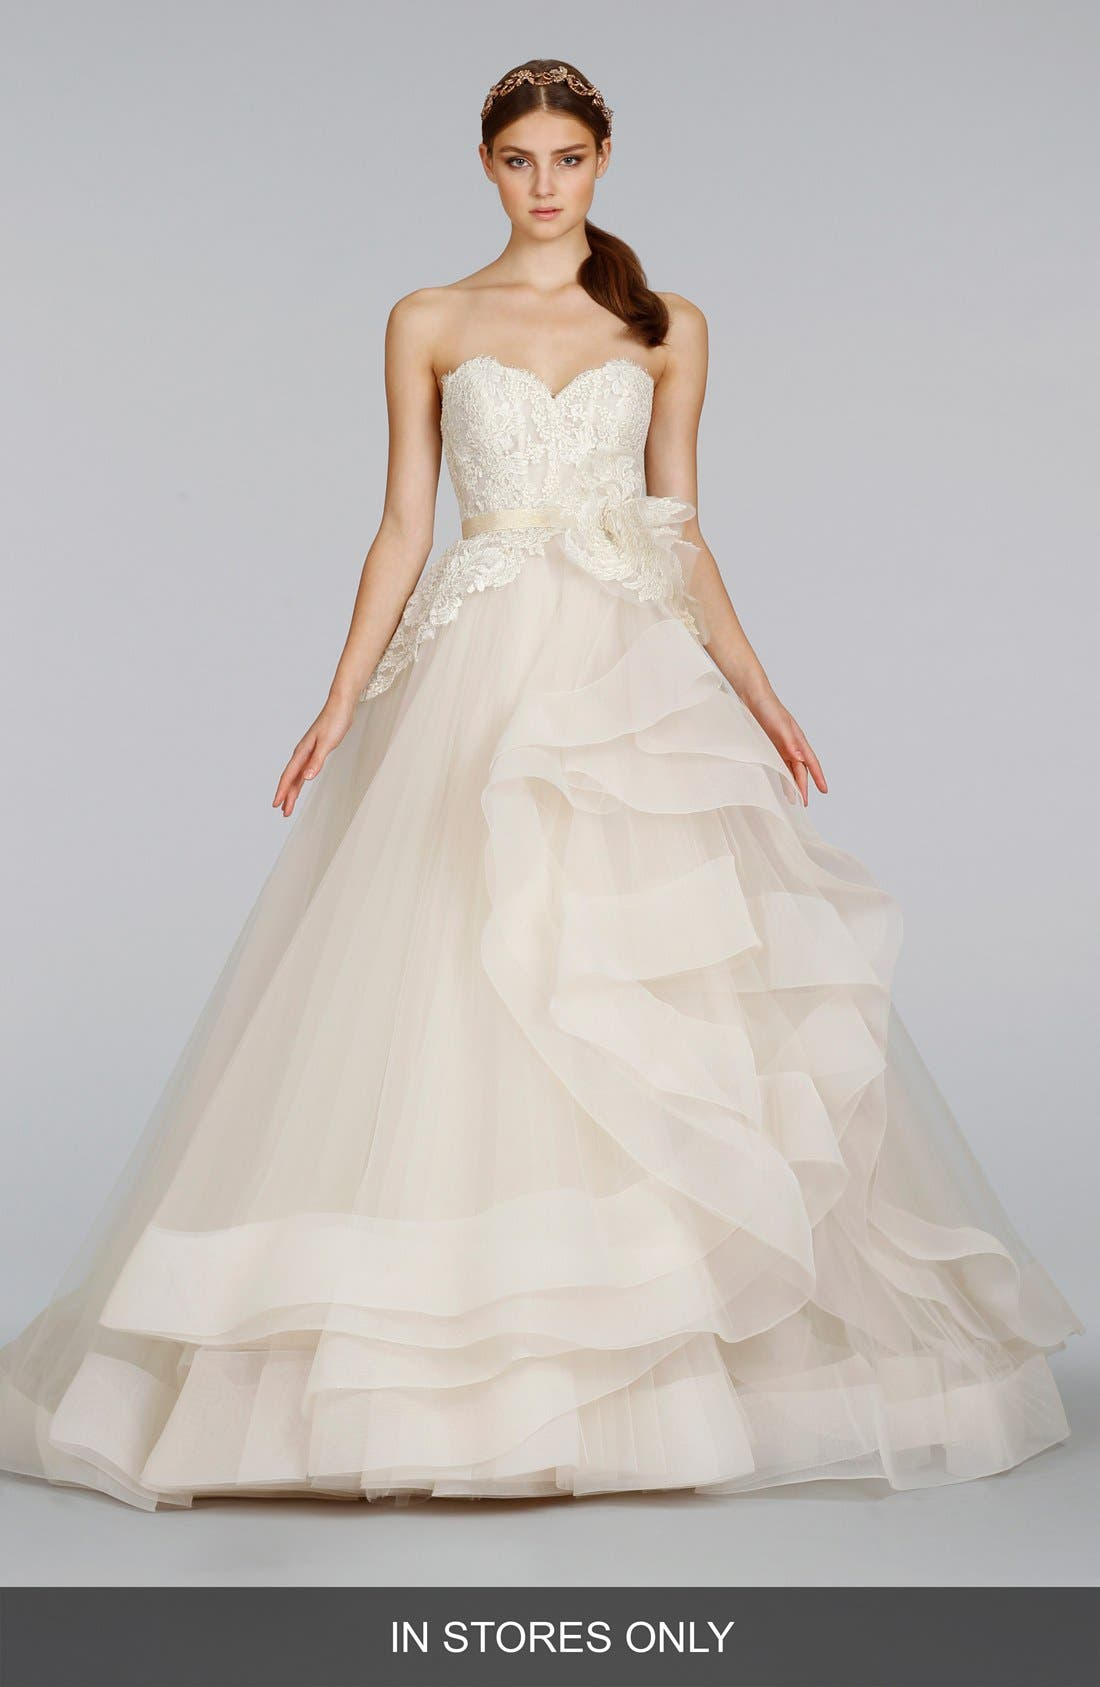 Strapless Lace & Layered Tulle Ballgown,                         Main,                         color, IVORY/GOLD/CHAMPAGNE